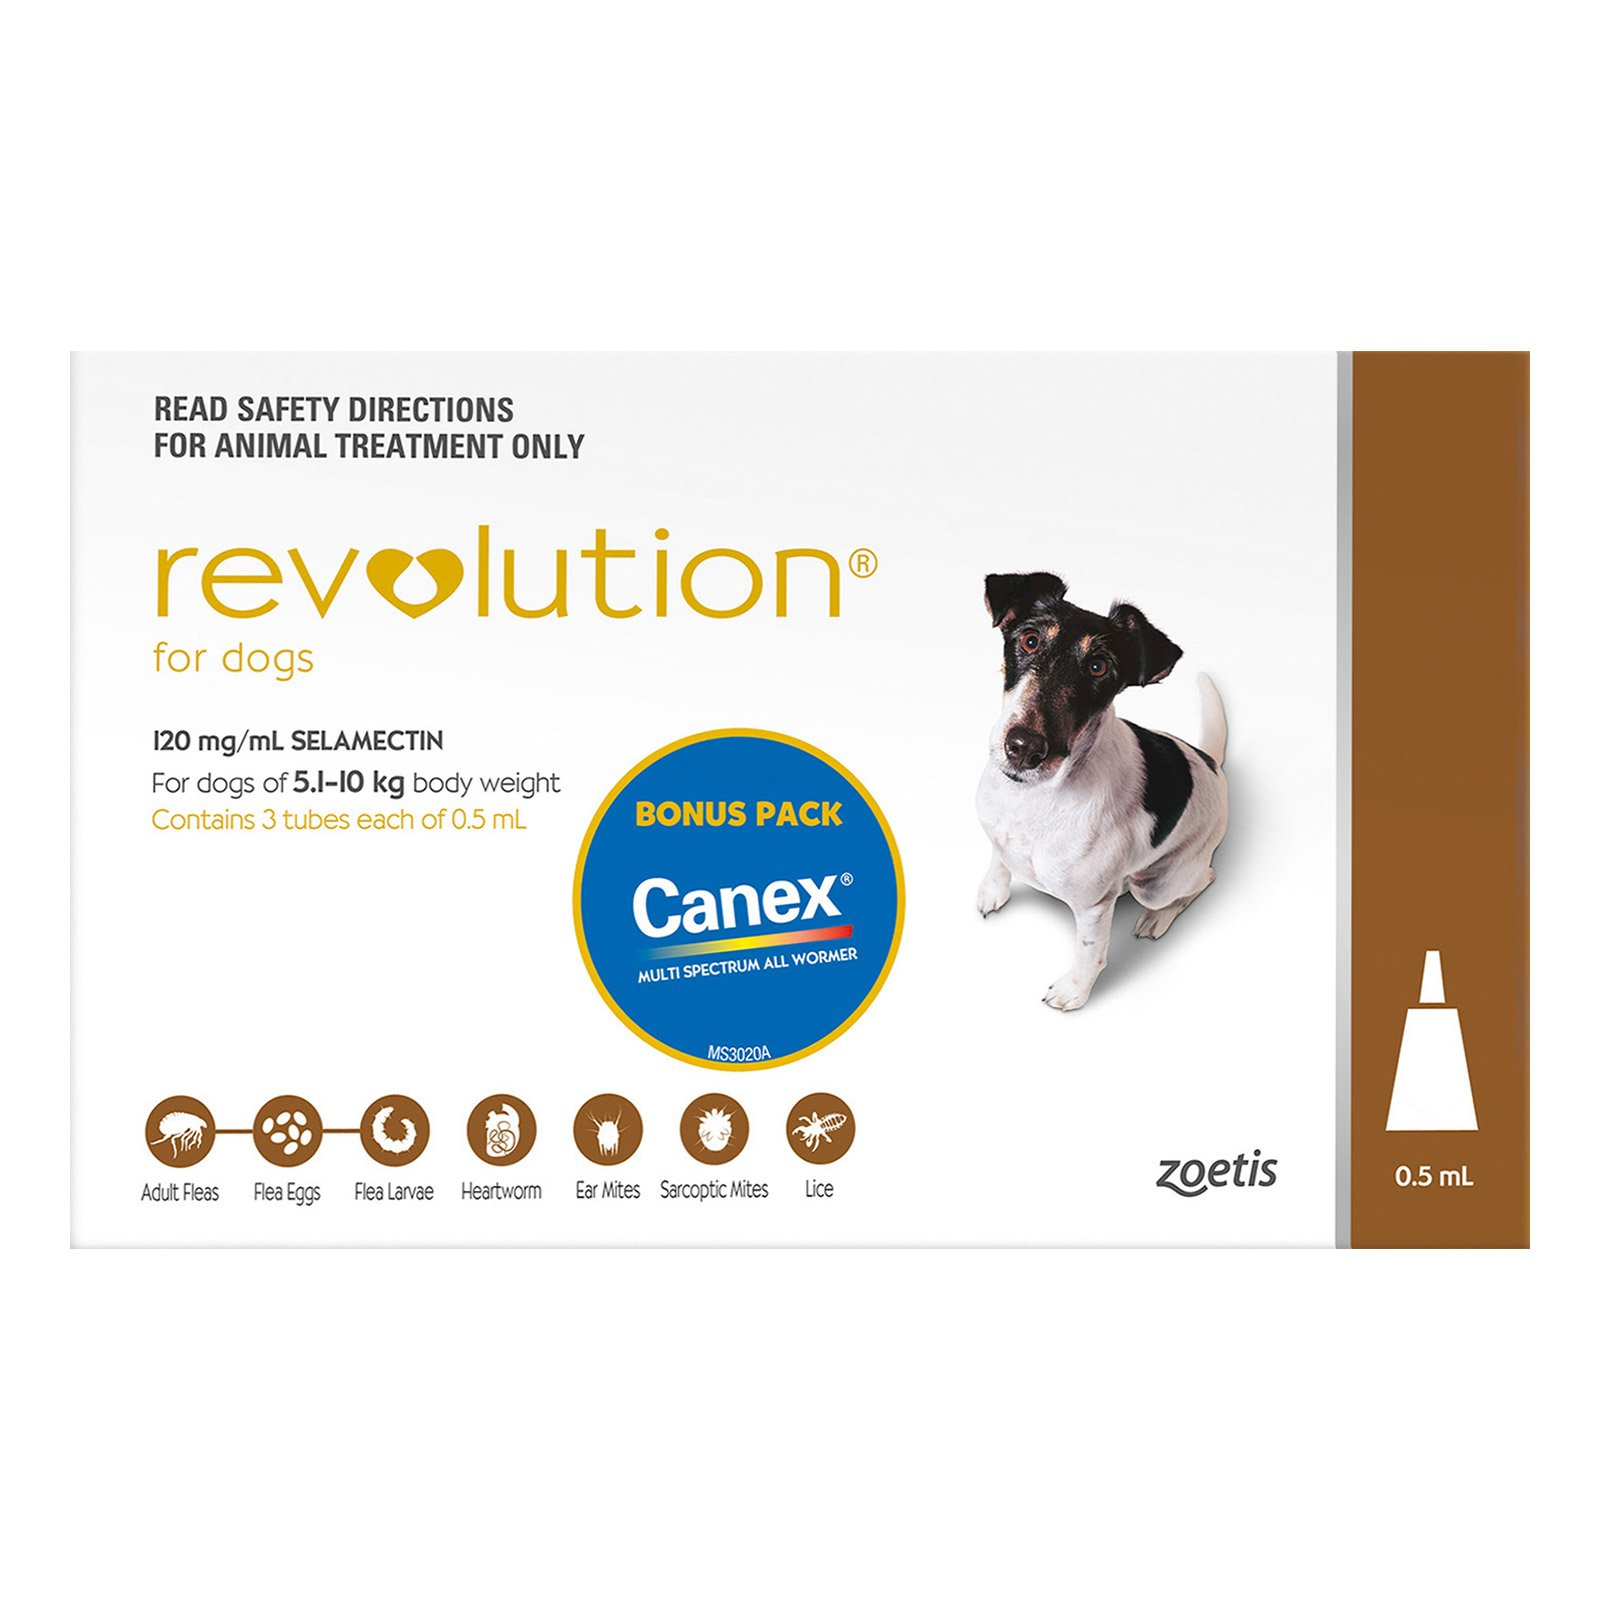 Revolution-canex-For-Small-Dogs-5_01272021_224659.jpg